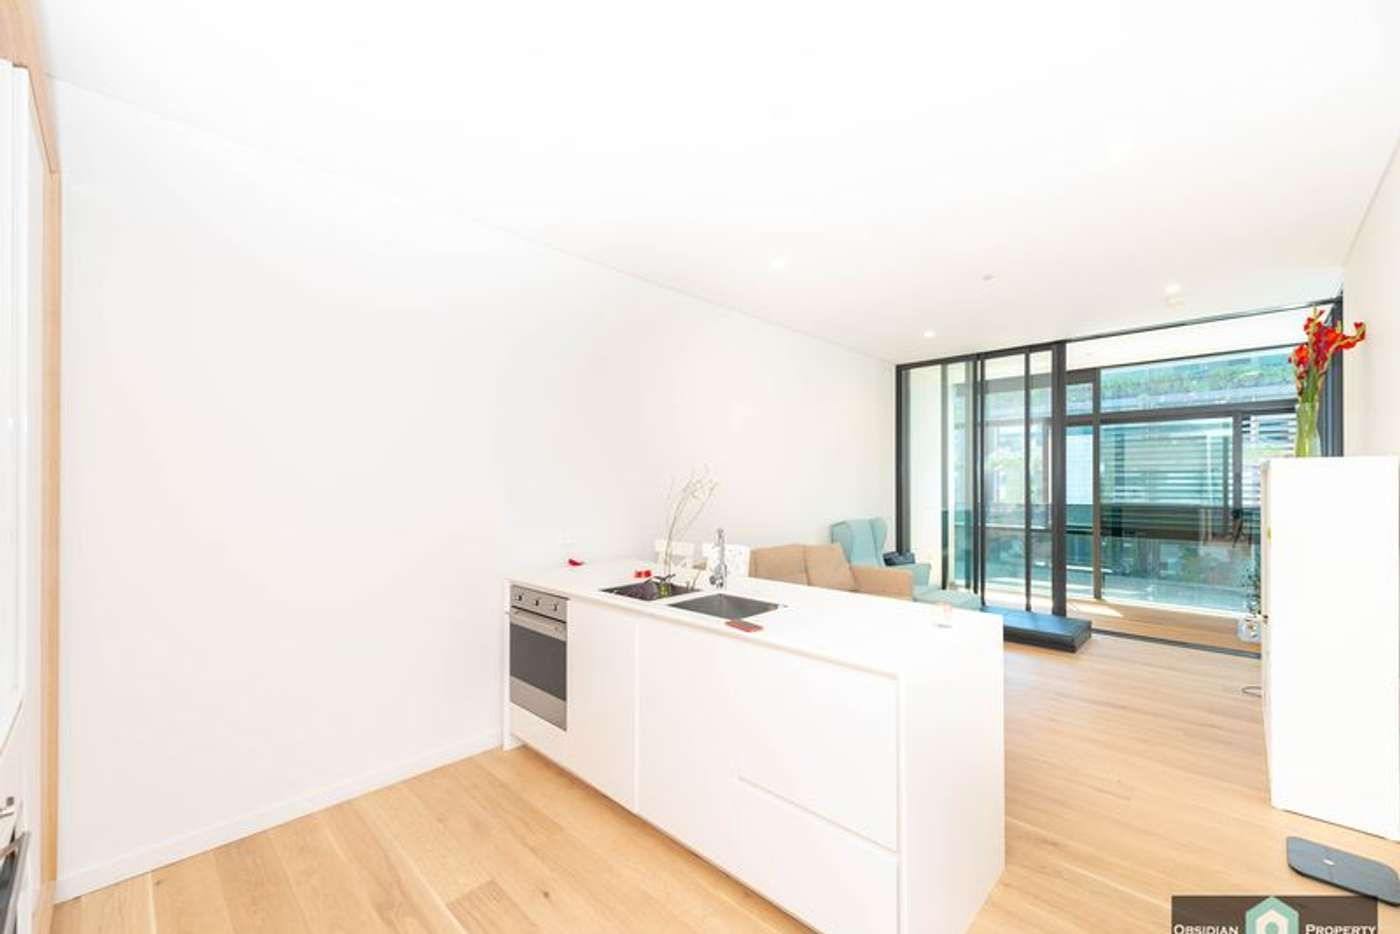 Main view of Homely apartment listing, 401/1 Chippendale Way, Chippendale NSW 2008